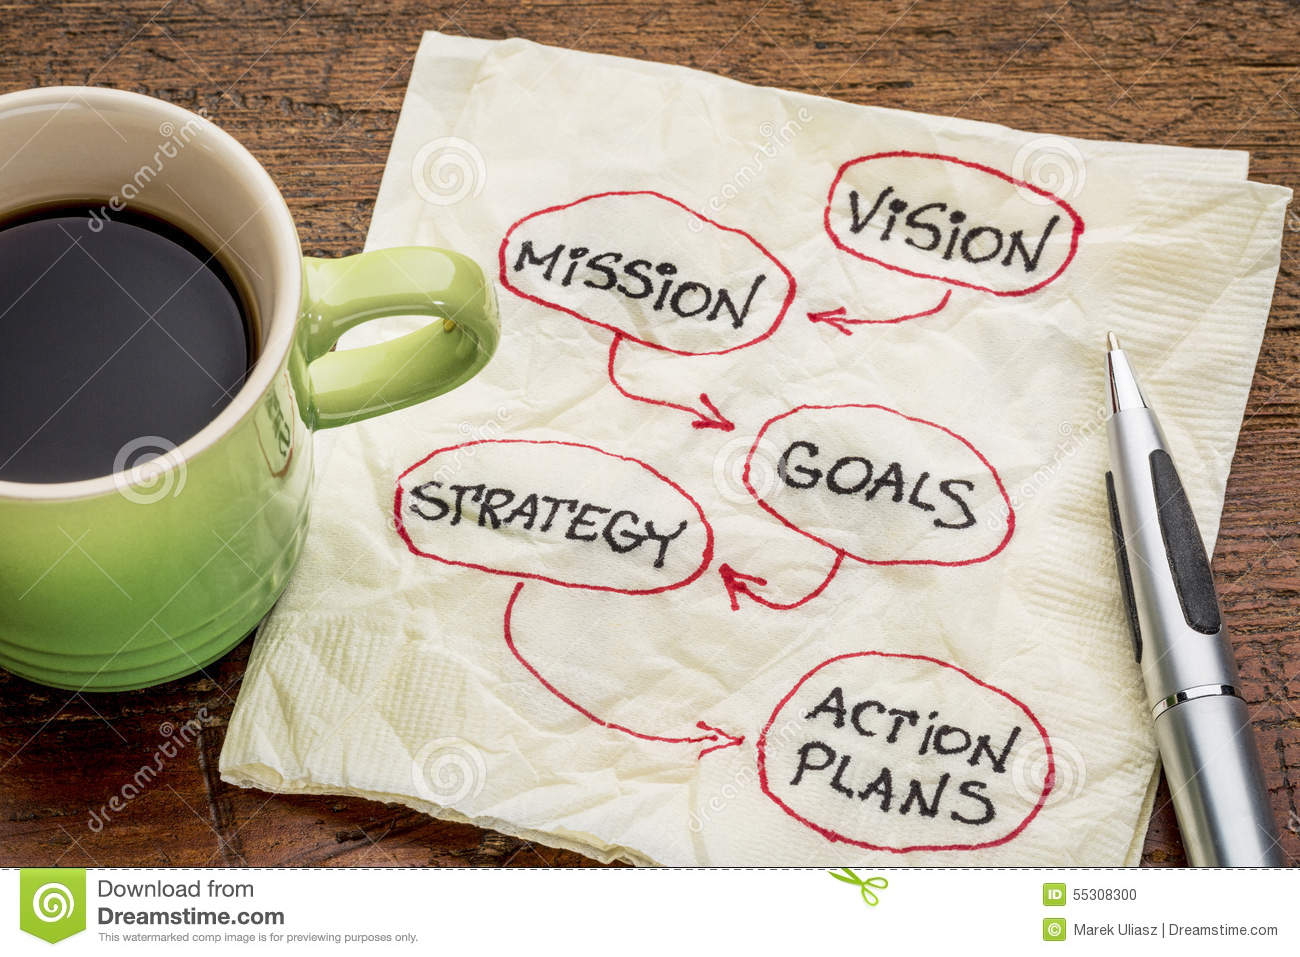 Vision Mission Goals Strategy And Asctino Plans Stock